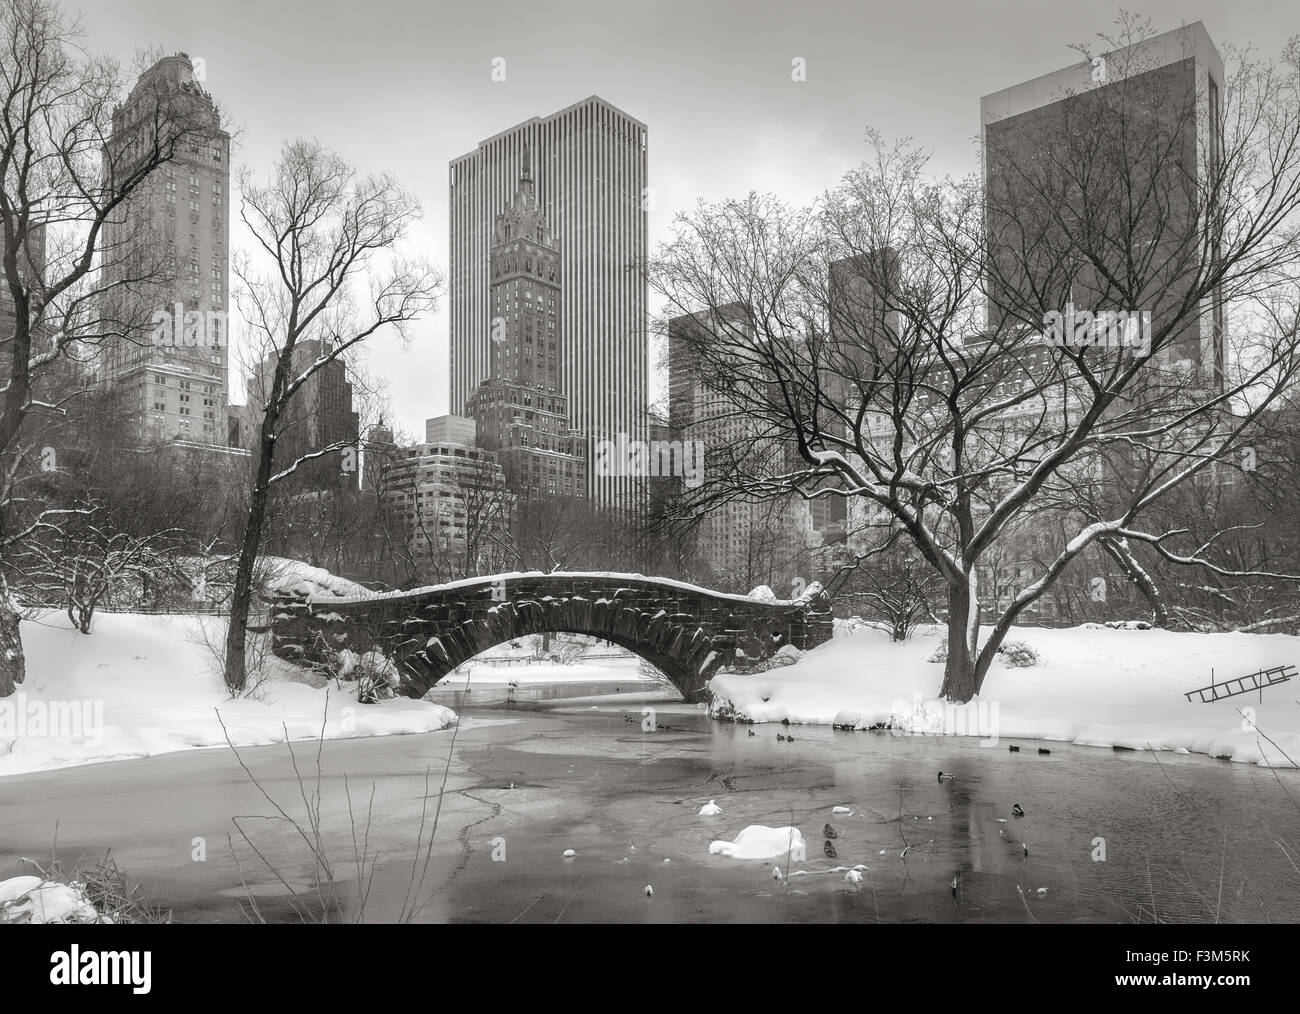 Central Park after a snowstorm with the Pond frozen, and Gapstow Bridge covered with snow. Manhattan skyscrapers - Stock Image